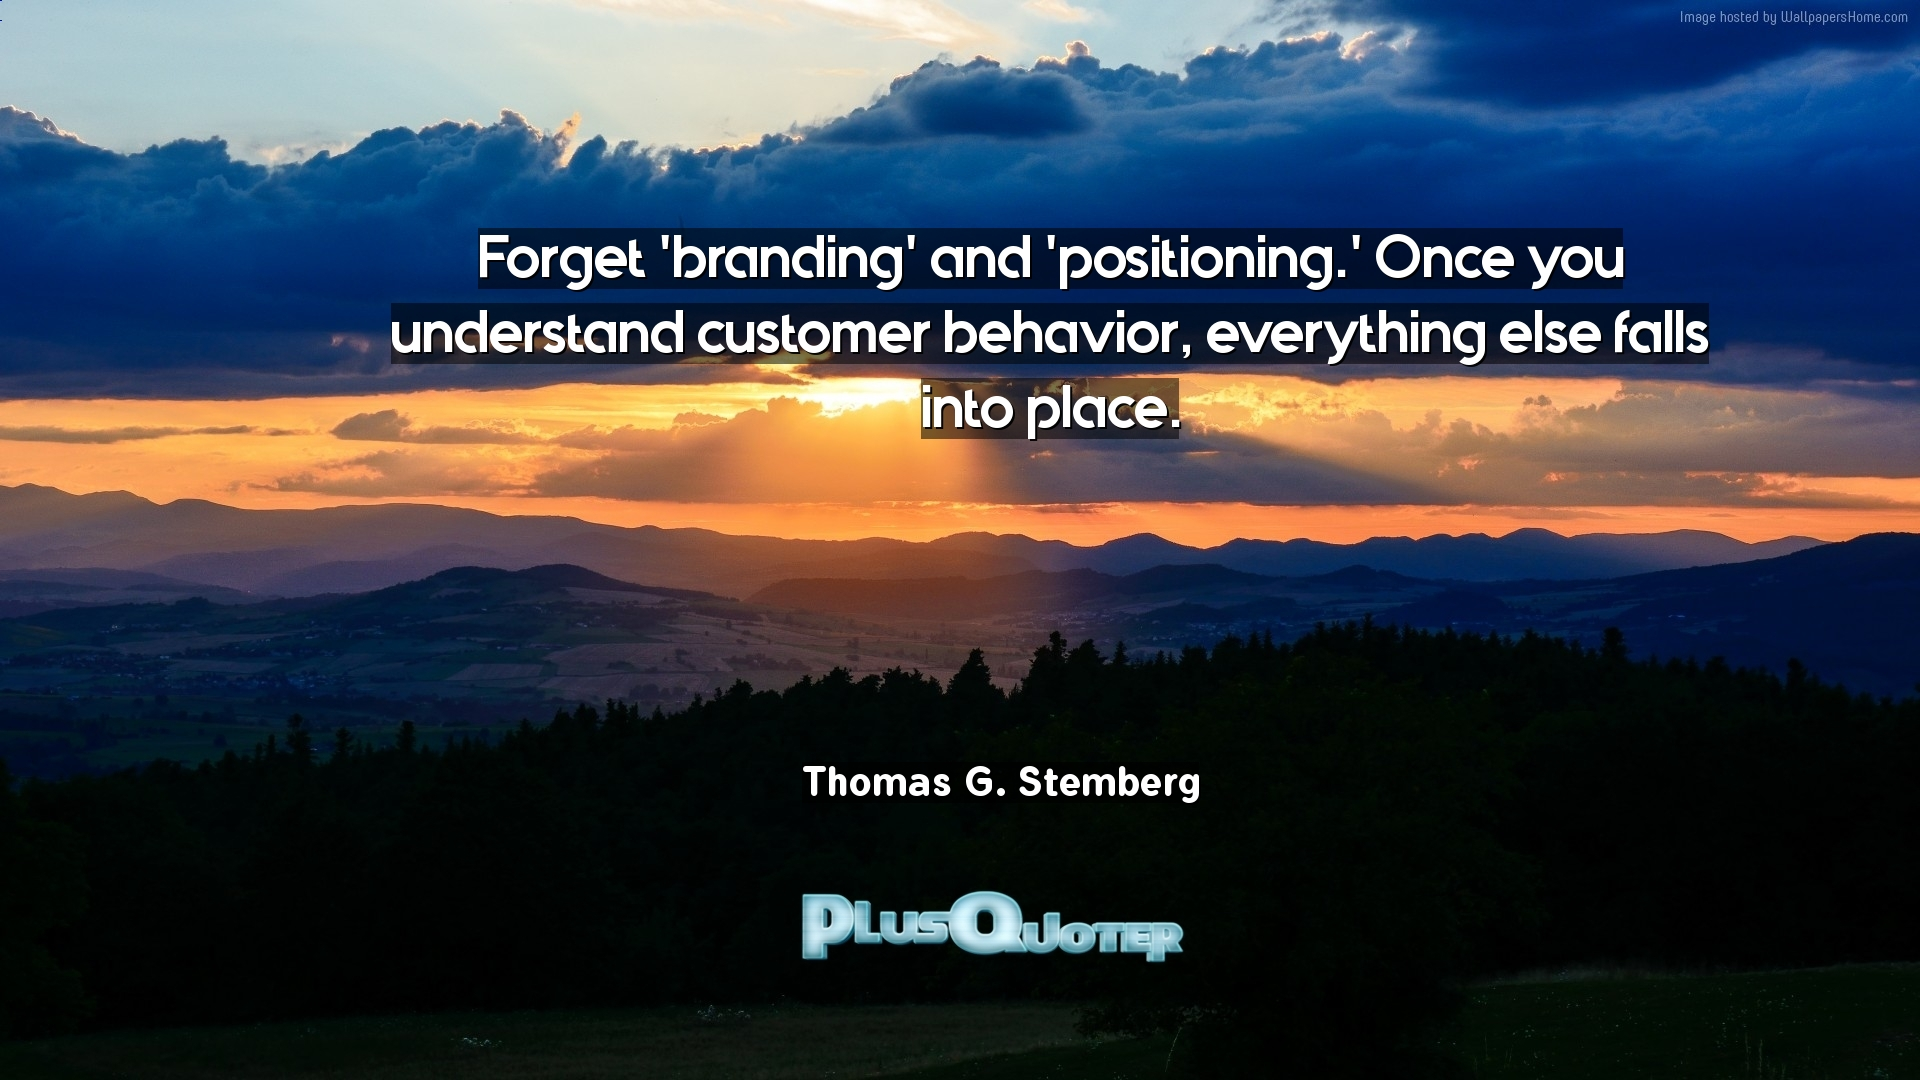 Branding Quotes Forget 'branding' And 'positioning.' Once You Understand Customer